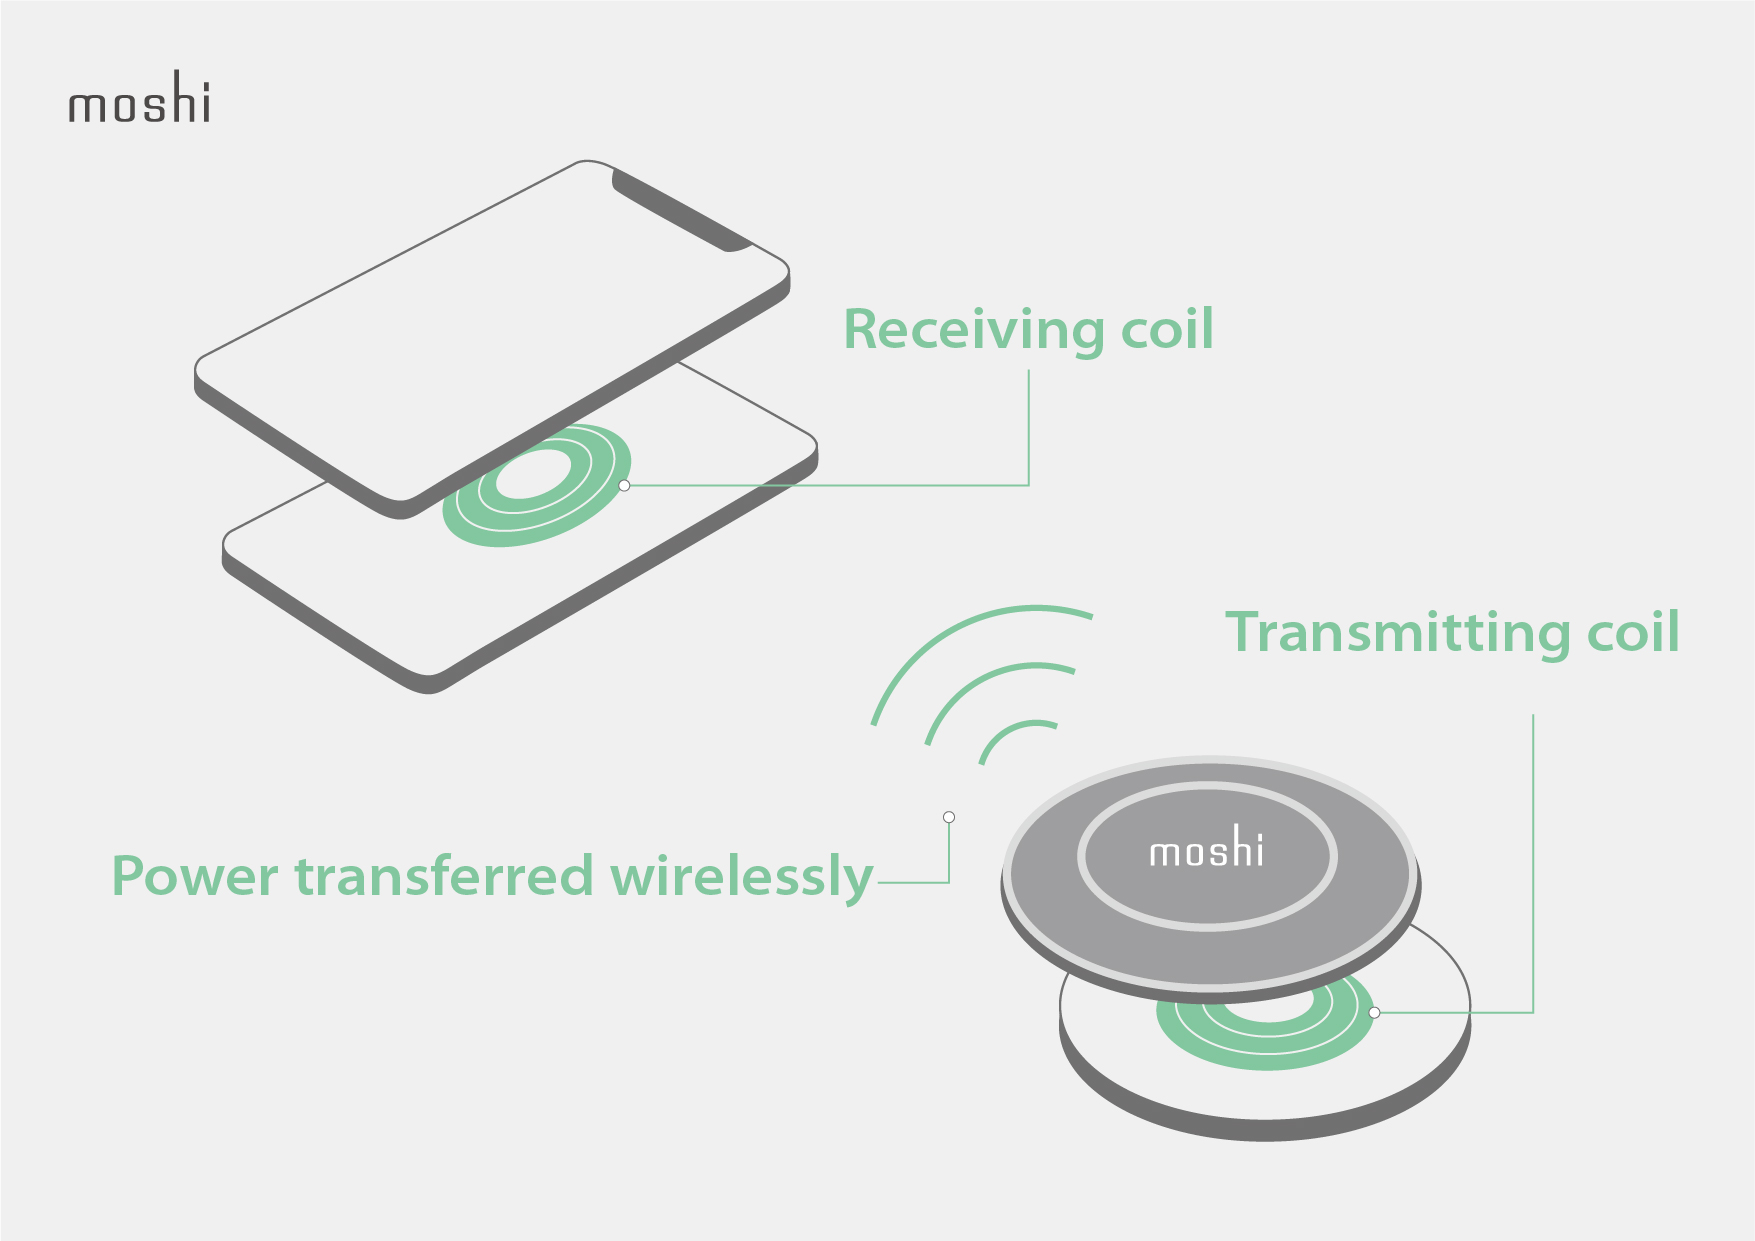 Illustration of how wireless power transmission works